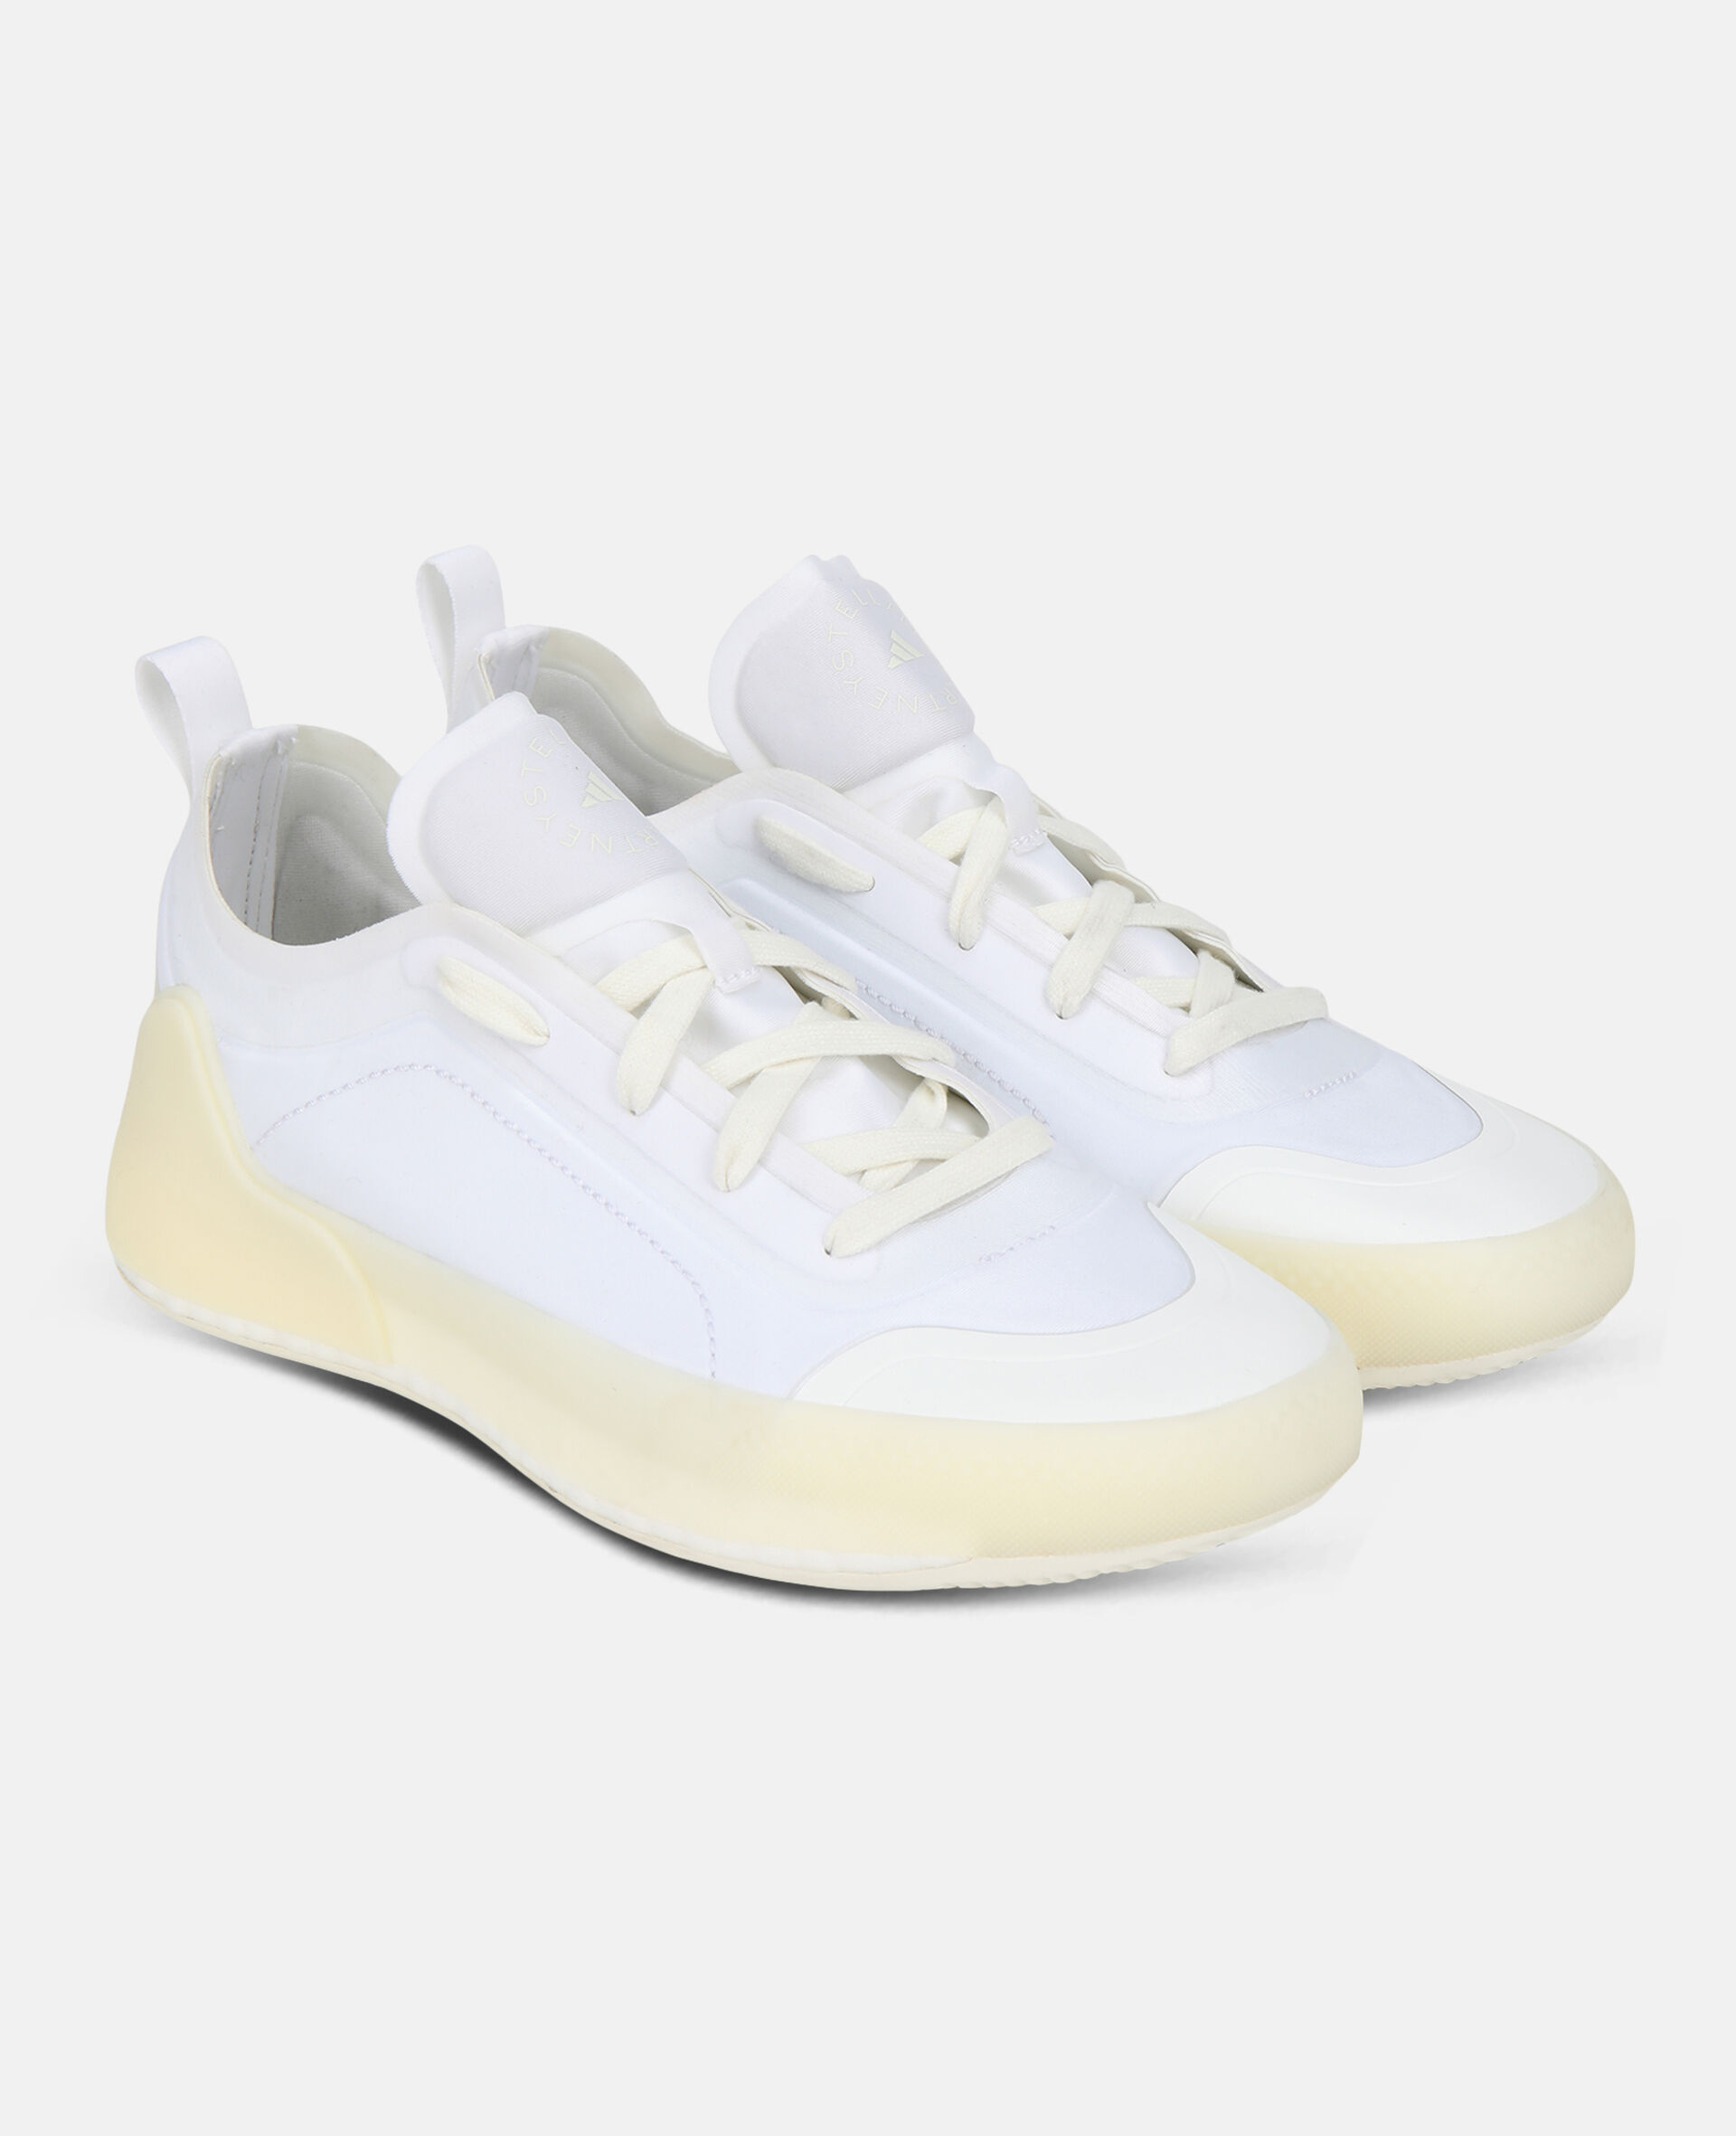 White Boost Treino Sneakers-White-large image number 3